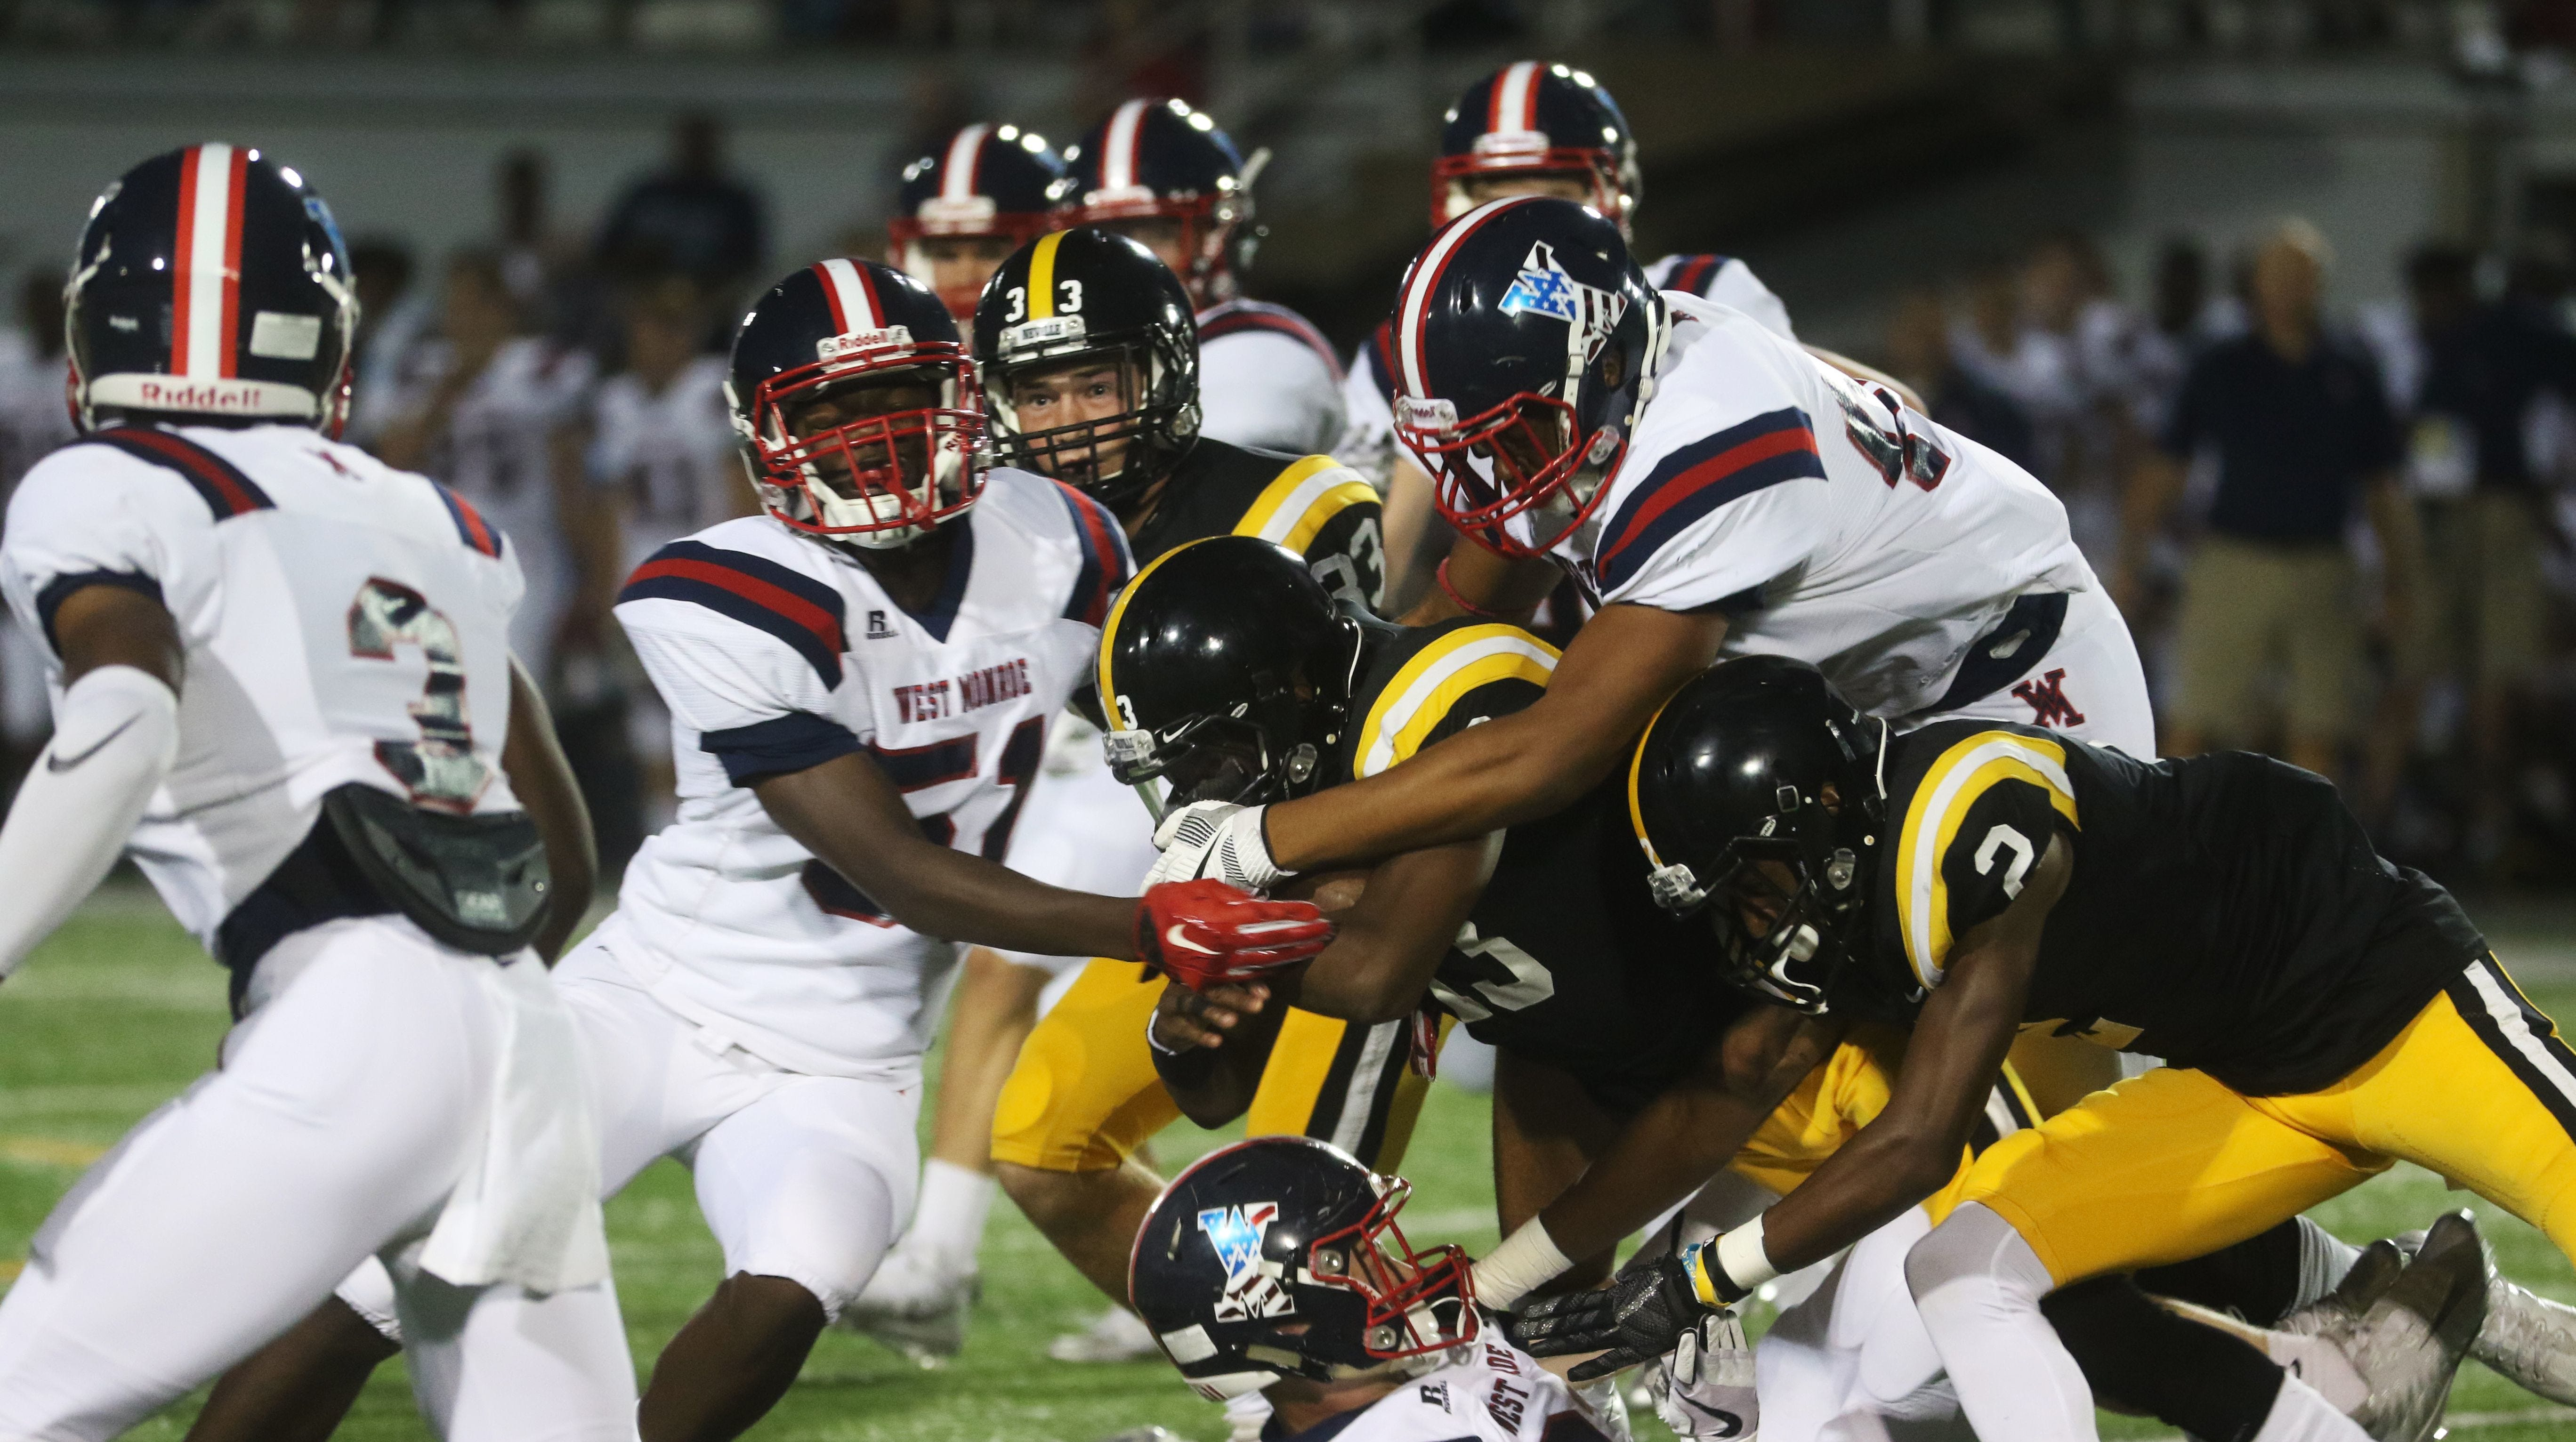 The West Monroe defense tackles a Neville ball carrier during the 2017 game between the teams.